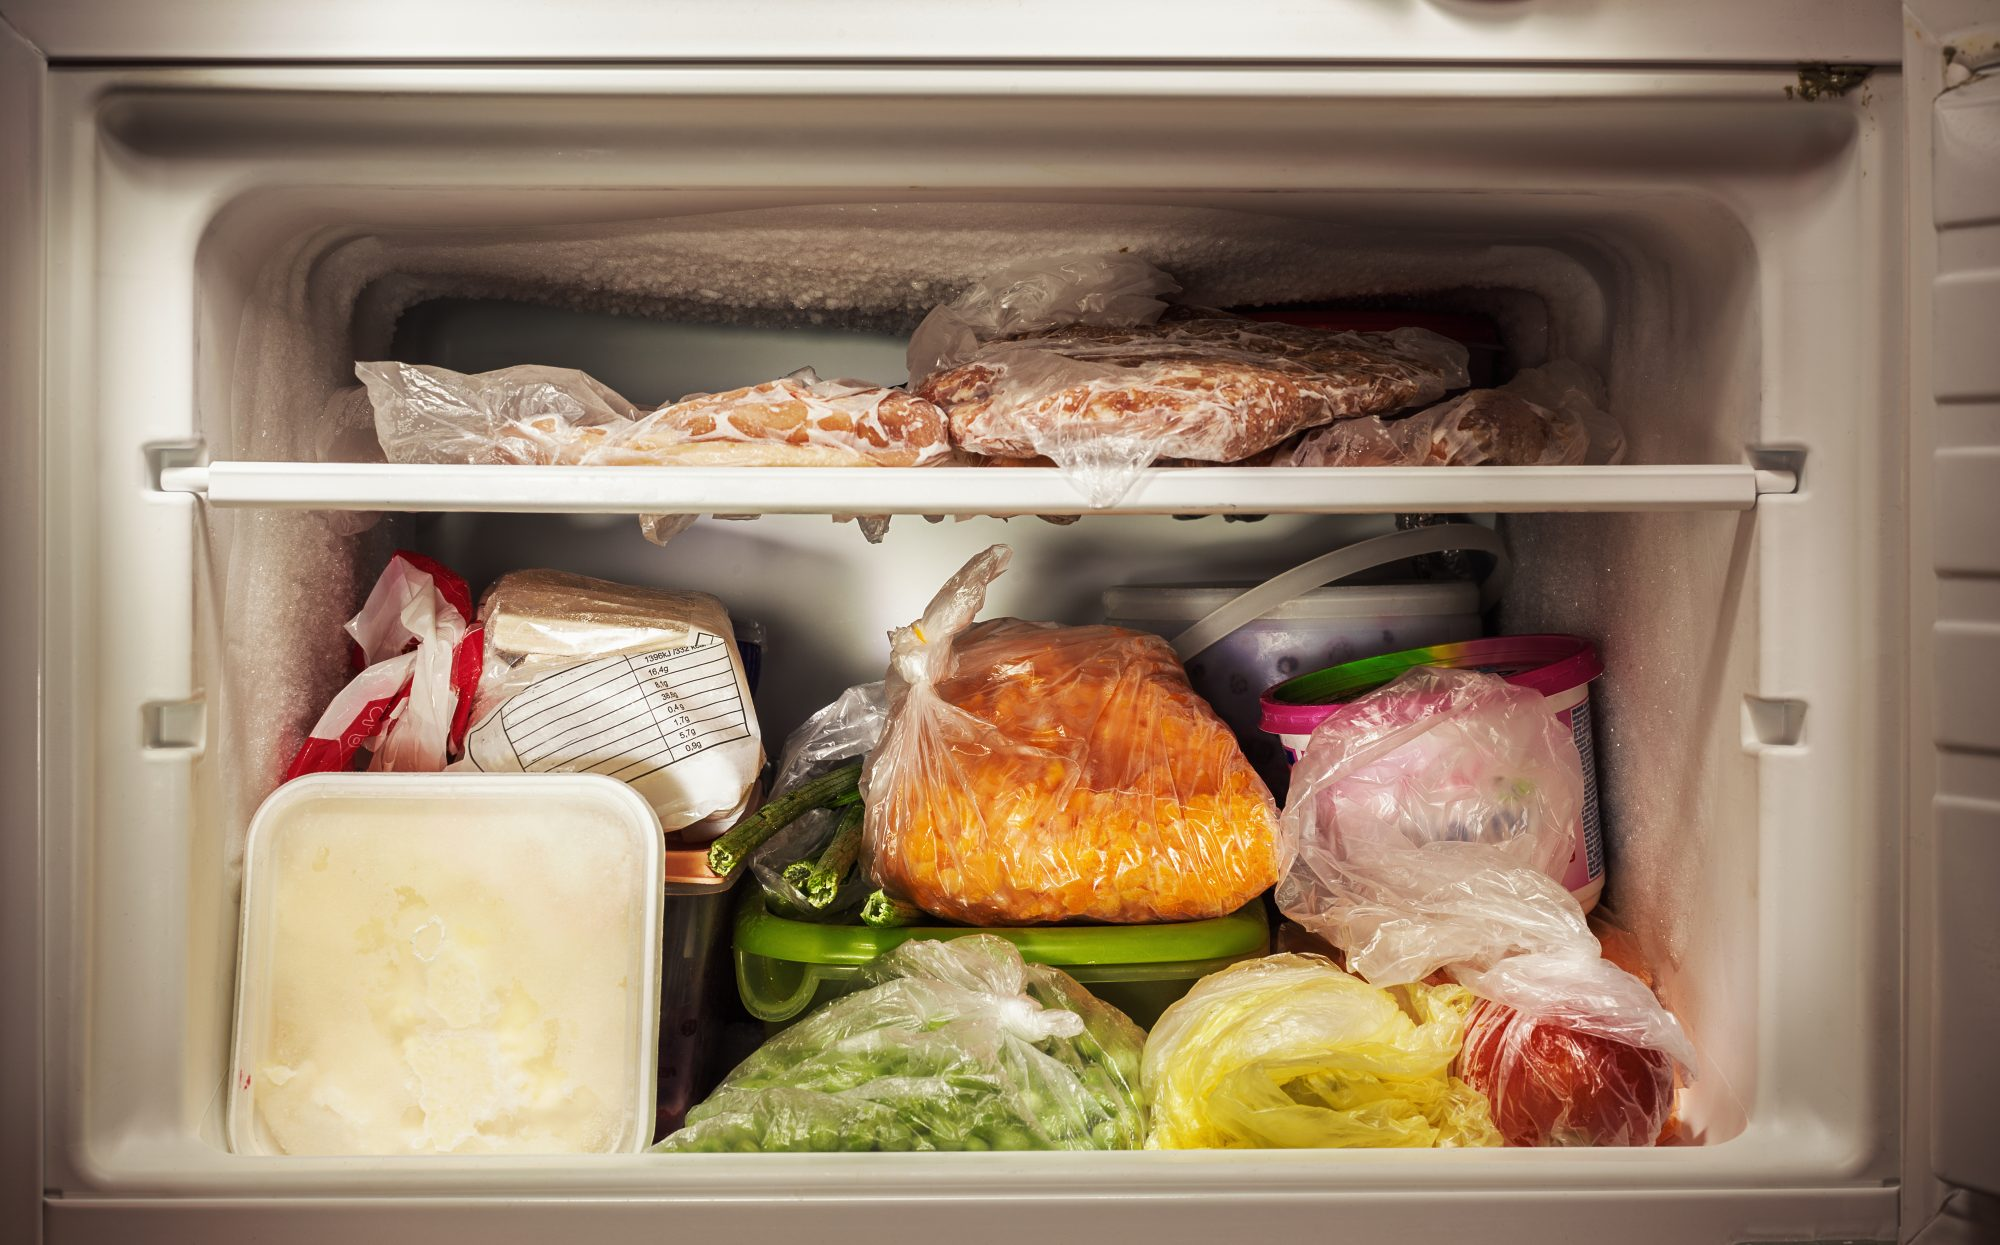 6 Things You Need to Know About Storing Food in the Freezer